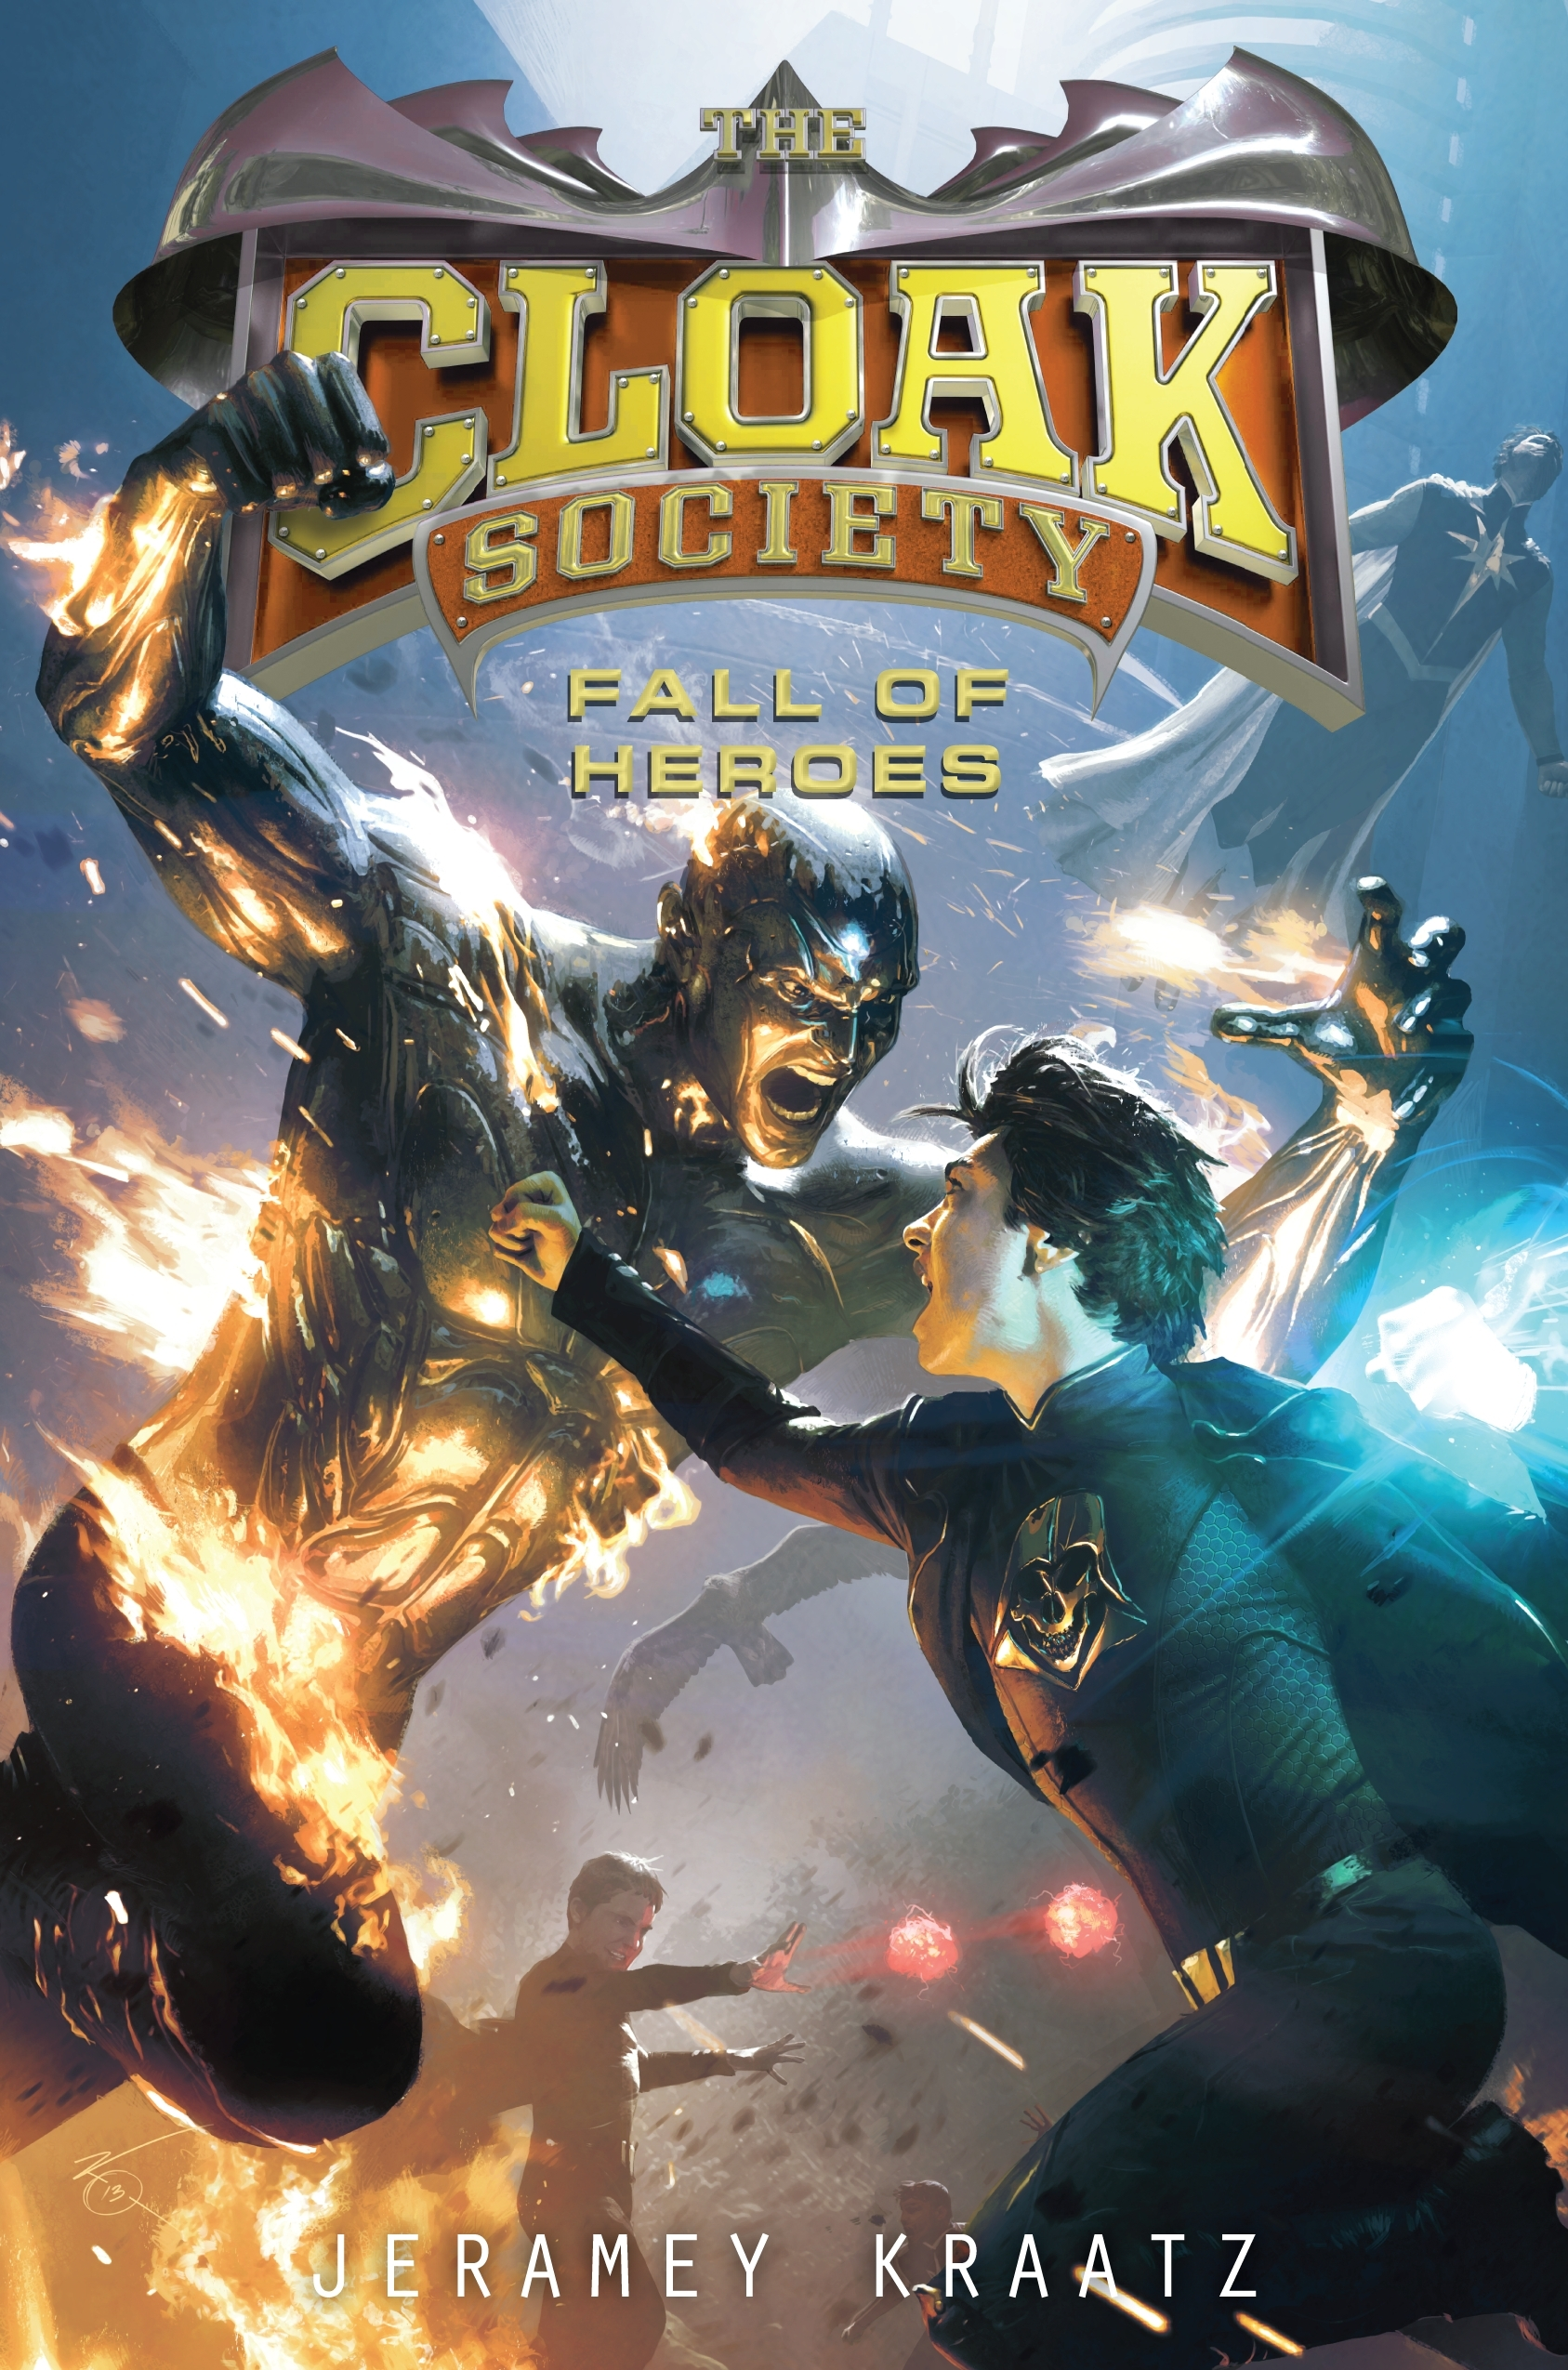 The Cloak Society - Fall of Heroes Cover.JPG